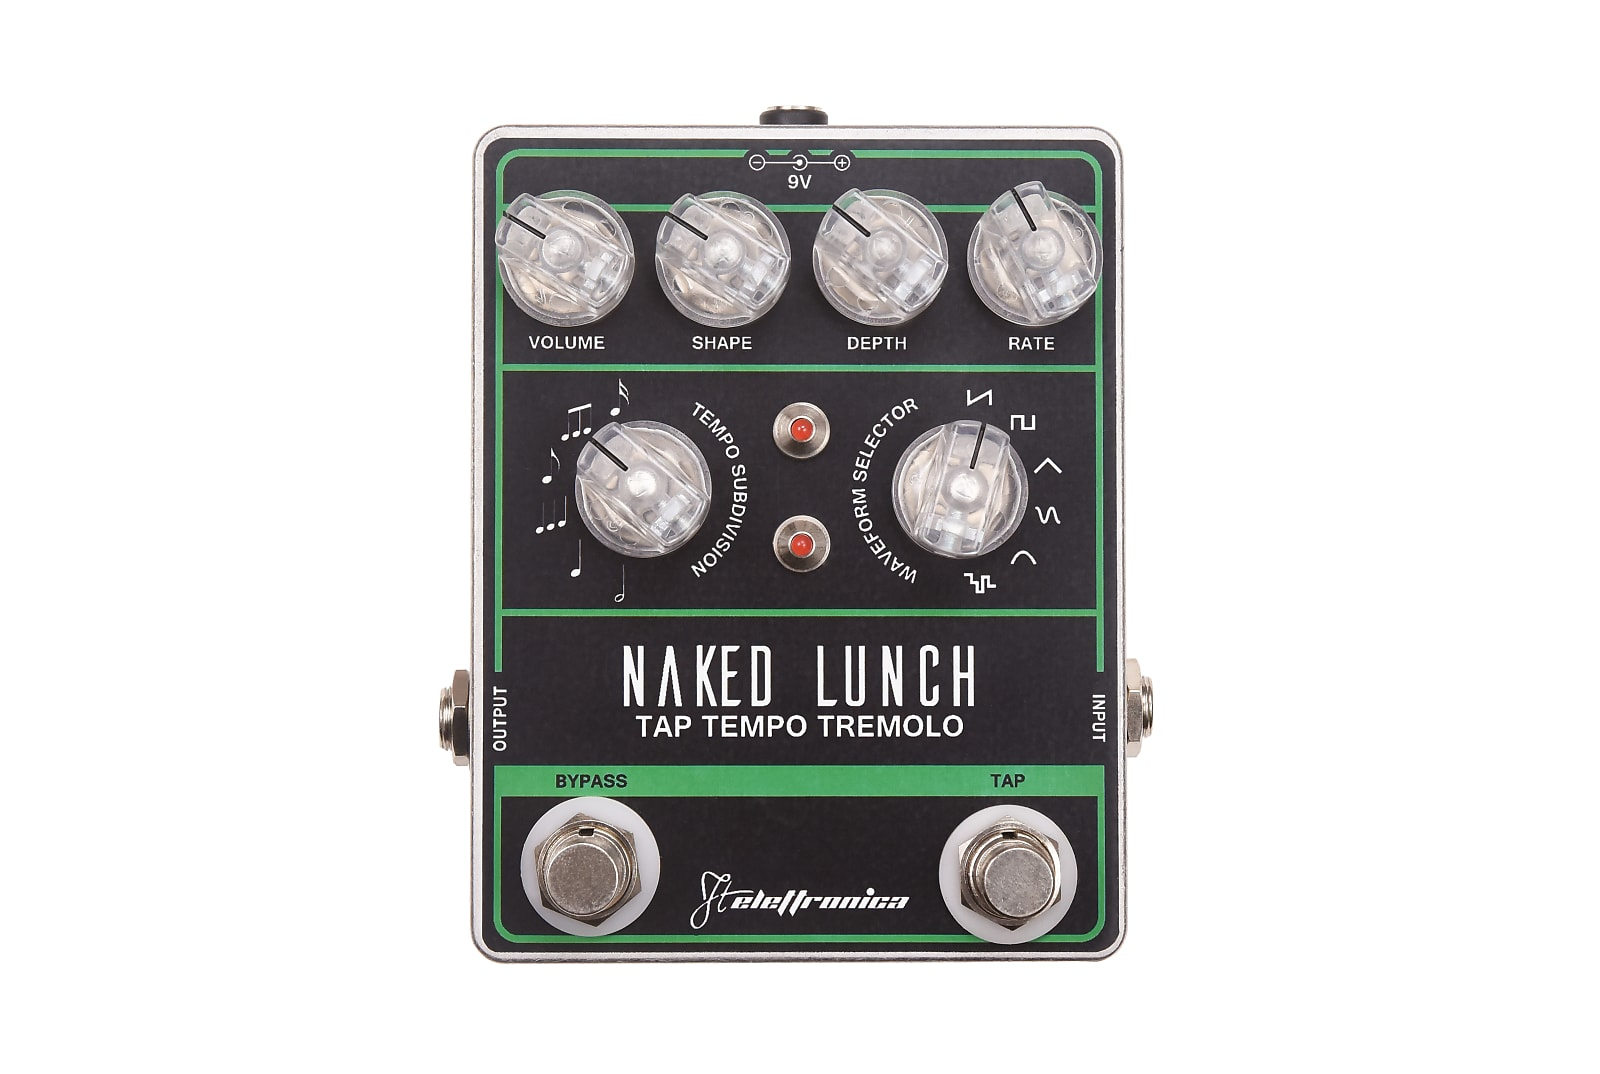 FTelettronica Naked Lunch Tap Tempo Tremolo  Black/Green/Aluminum